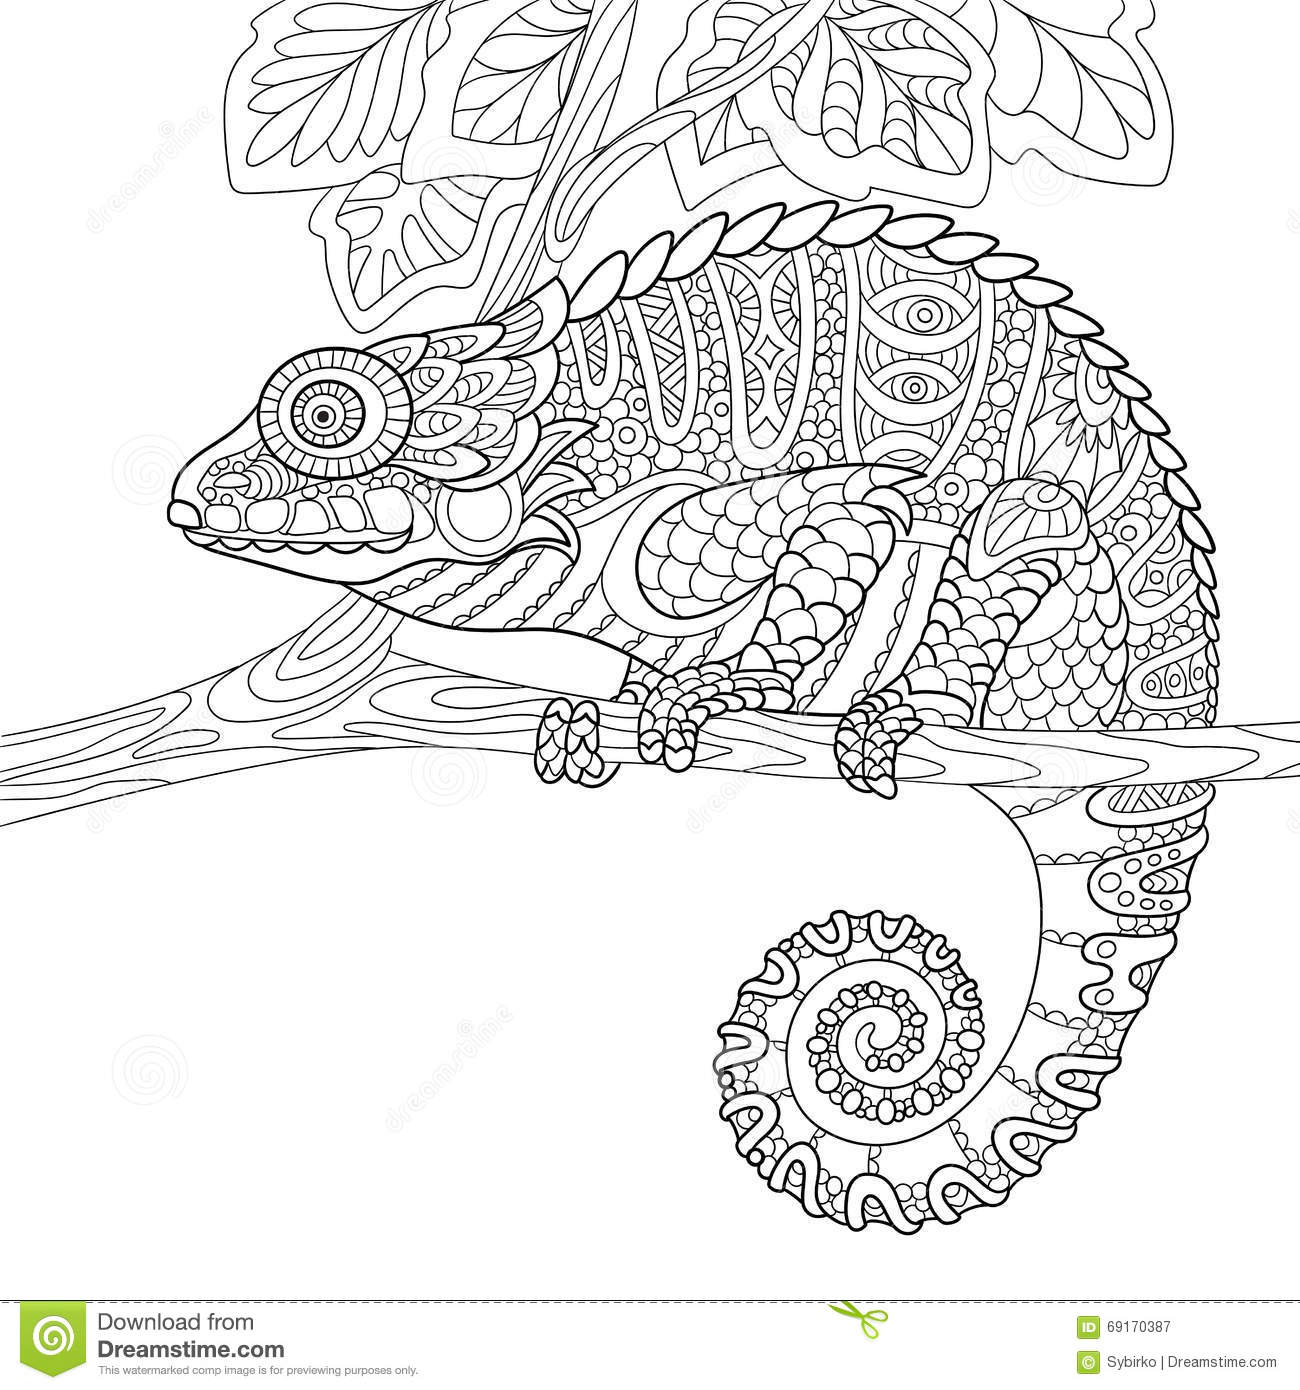 Free coloring pages chameleon - Zentangle Stylized Chameleon Royalty Free Stock Photography